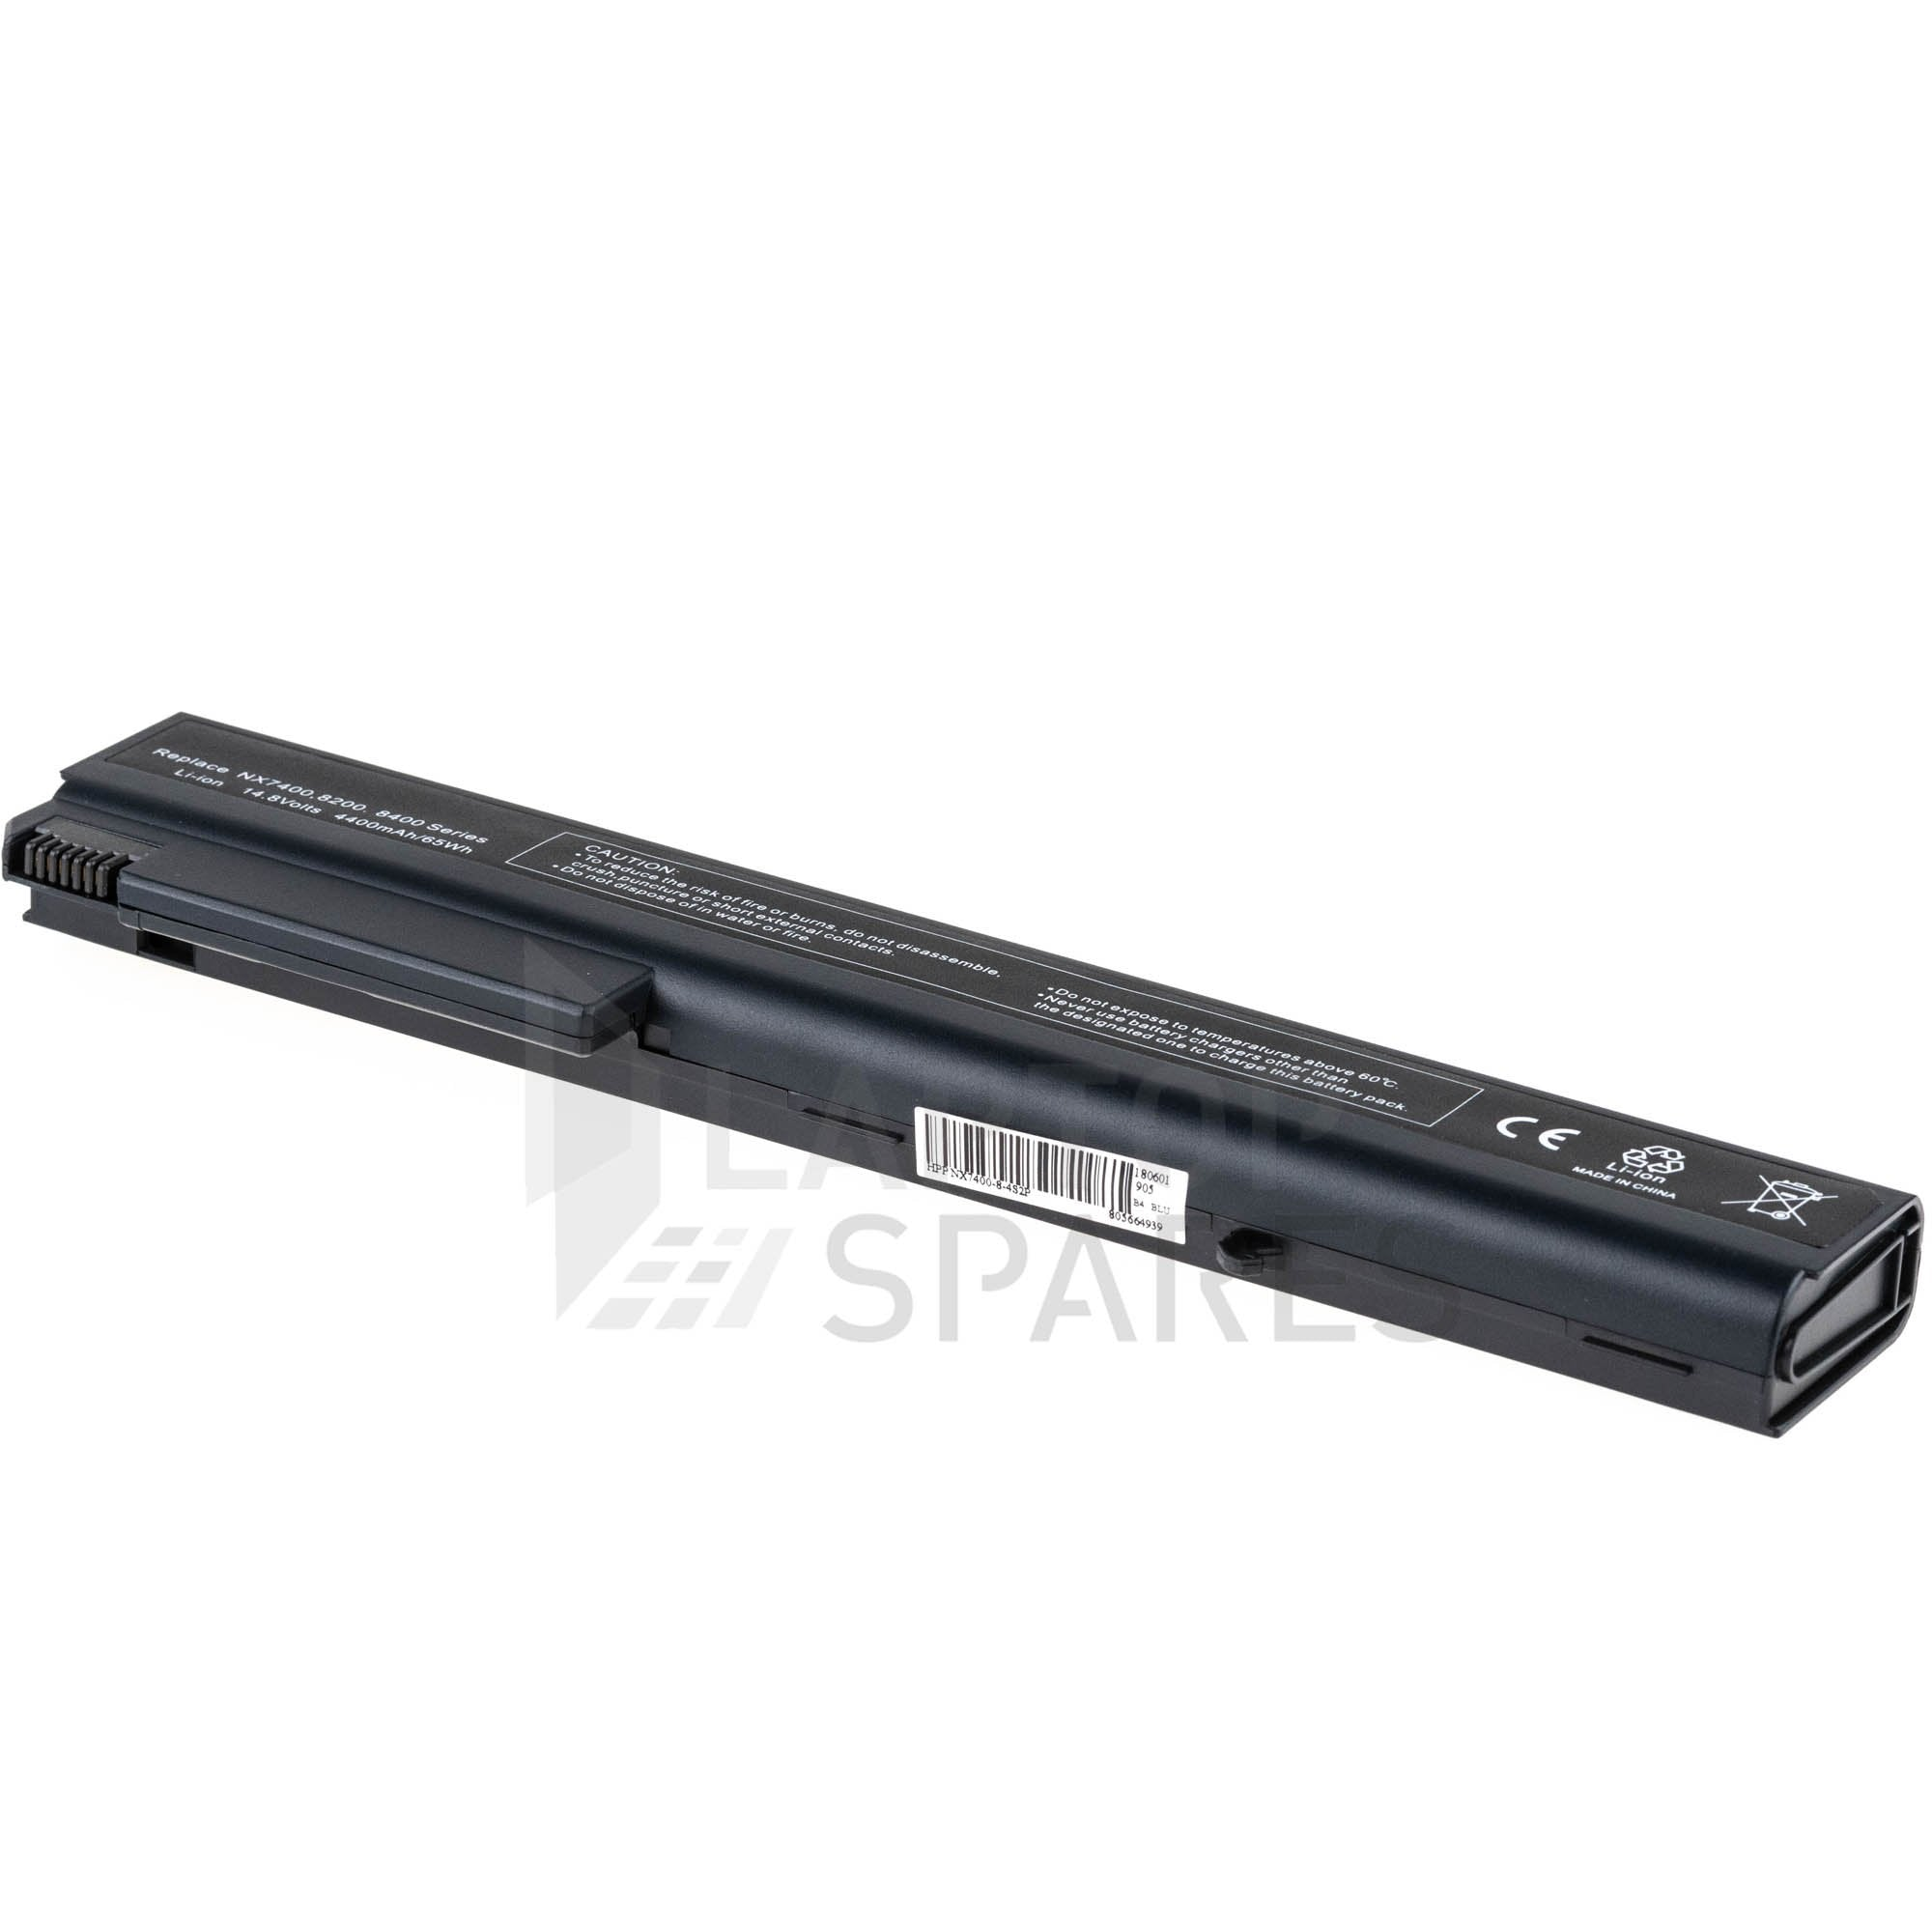 HP Business Notebook NW9440 MOBILE WORKSTATION 4400mAh 6 Cell Battery